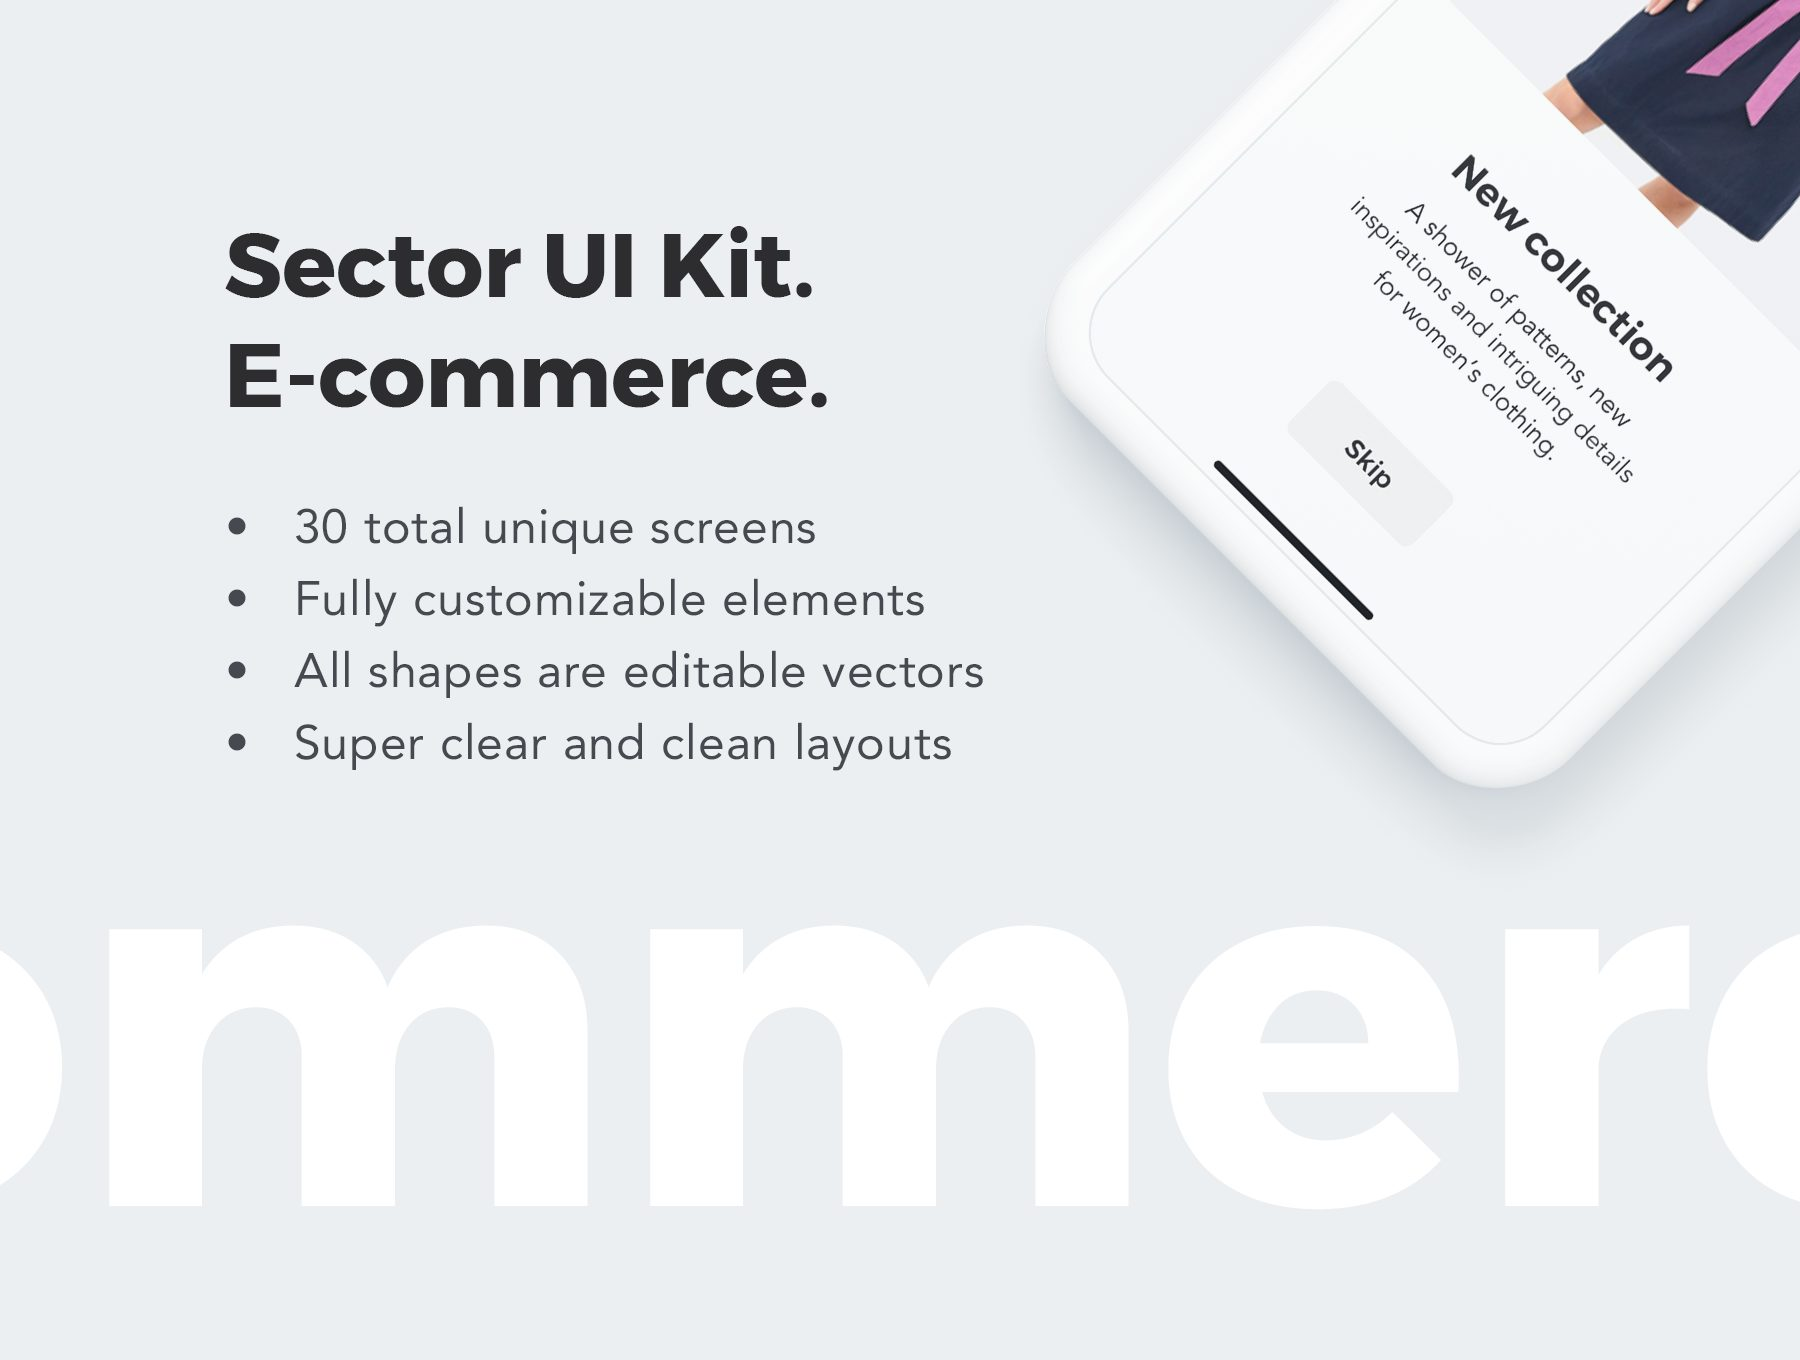 时尚服饰电商APP UI KIT套装 app设计iOS Ui[Sketch,XD] Sector UI Kit E commerce